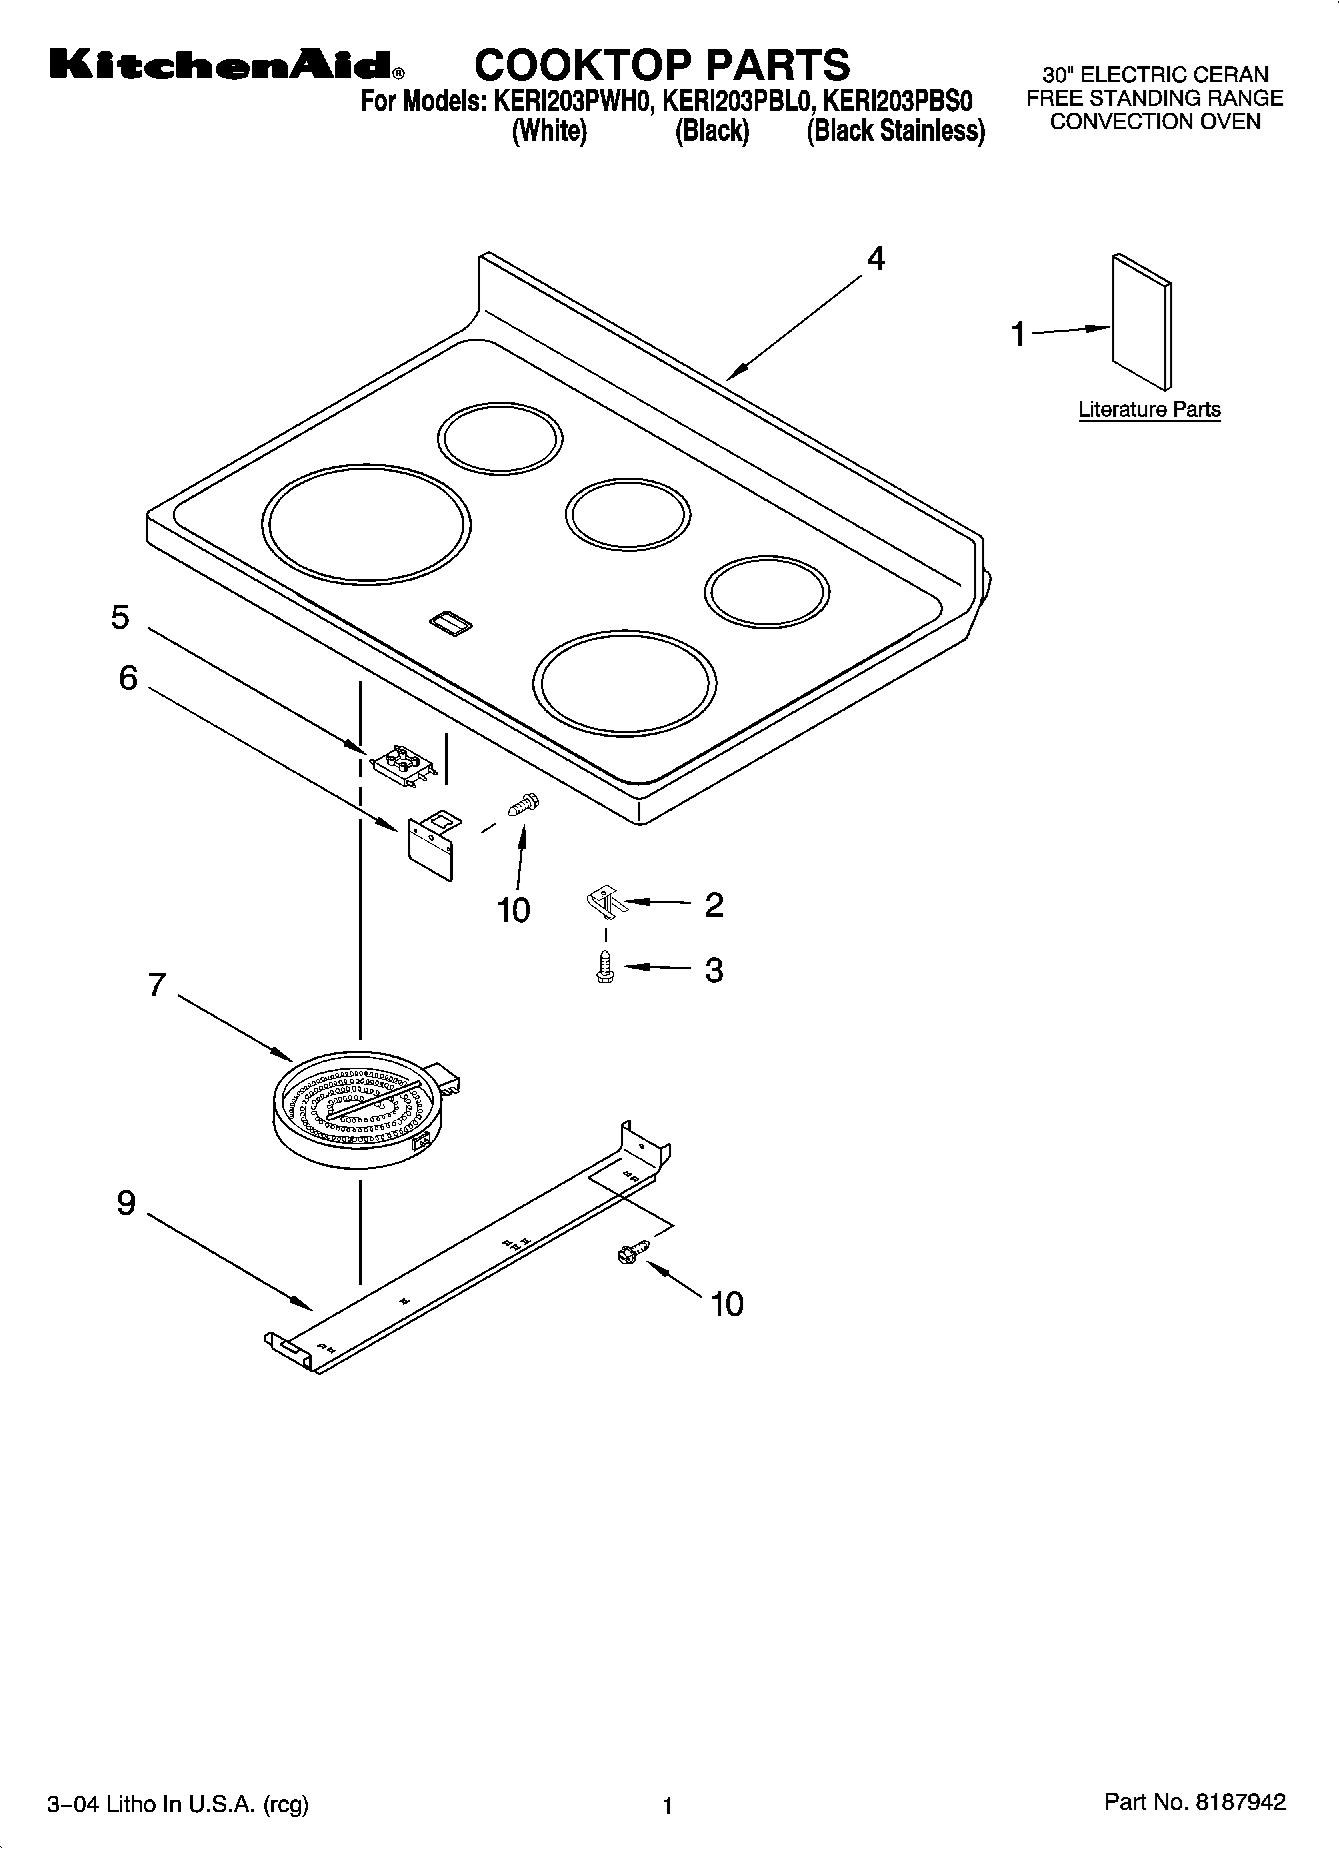 Ge Dishwasher Parts Diagram also Kitchenaid Oven Door Parts Diagram furthermore Whirlpool Jenn Air Electric Y04100124 Ap4283838 as well Kenmore Elite Parts Diagram Part 58 in addition Kitchenaid Range Hood. on kitchenaid cooktop replacement parts